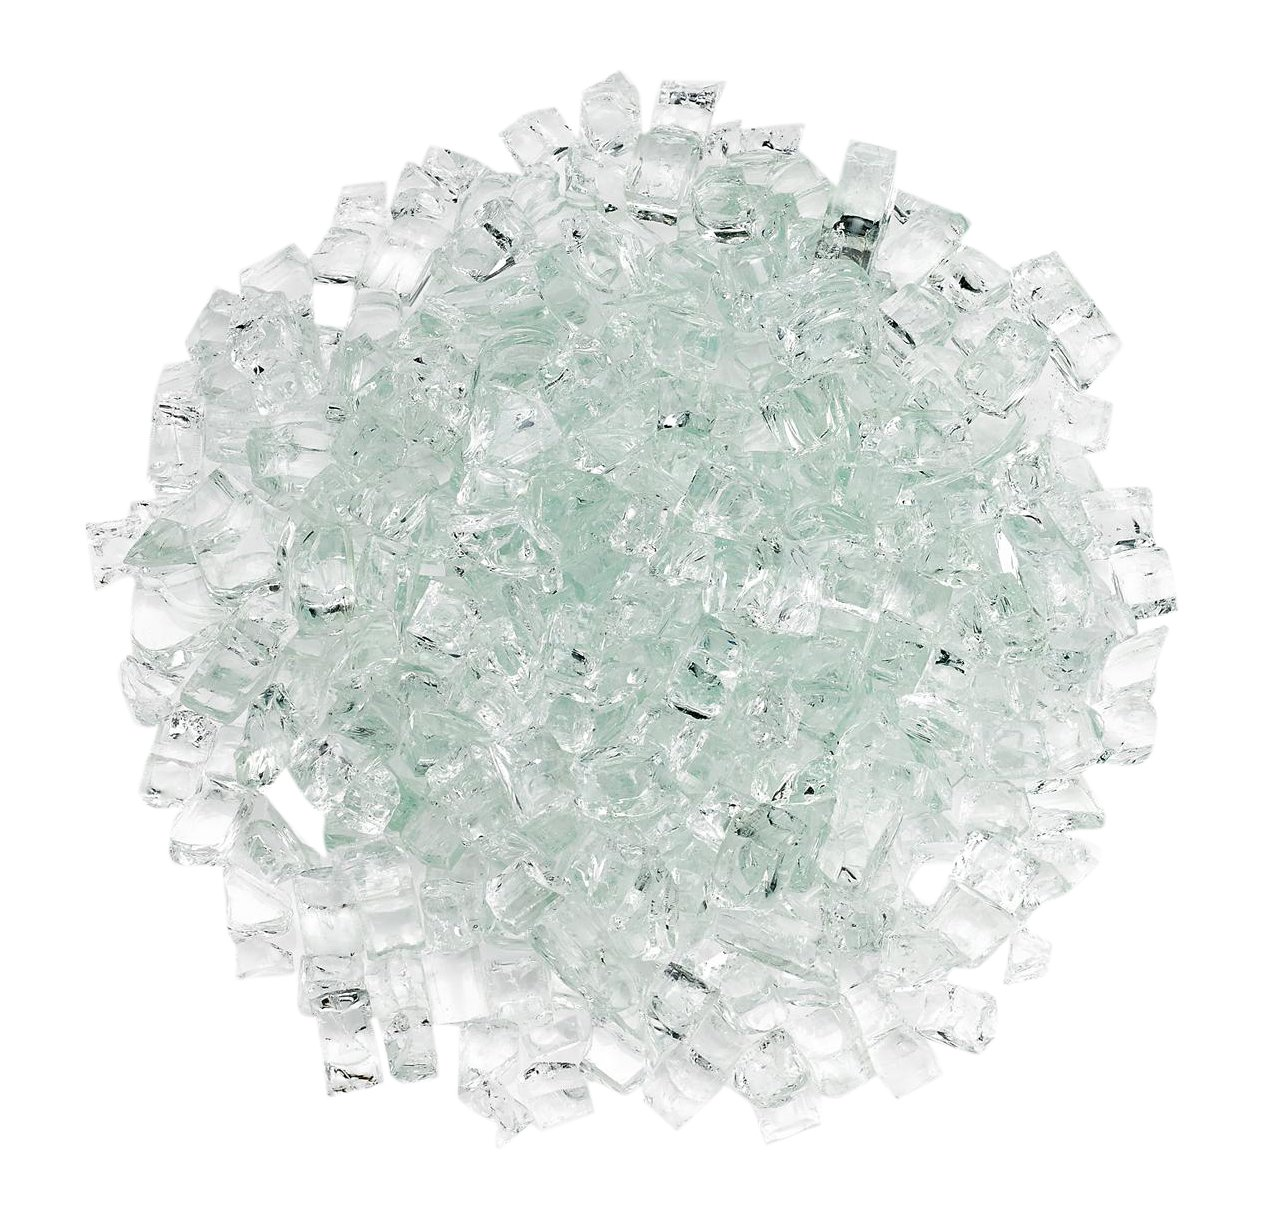 American Fireglass Fire Glass with Fireplace Glass and Fire Pit Glass, 5-Pound Inc AFF-COBL12-5